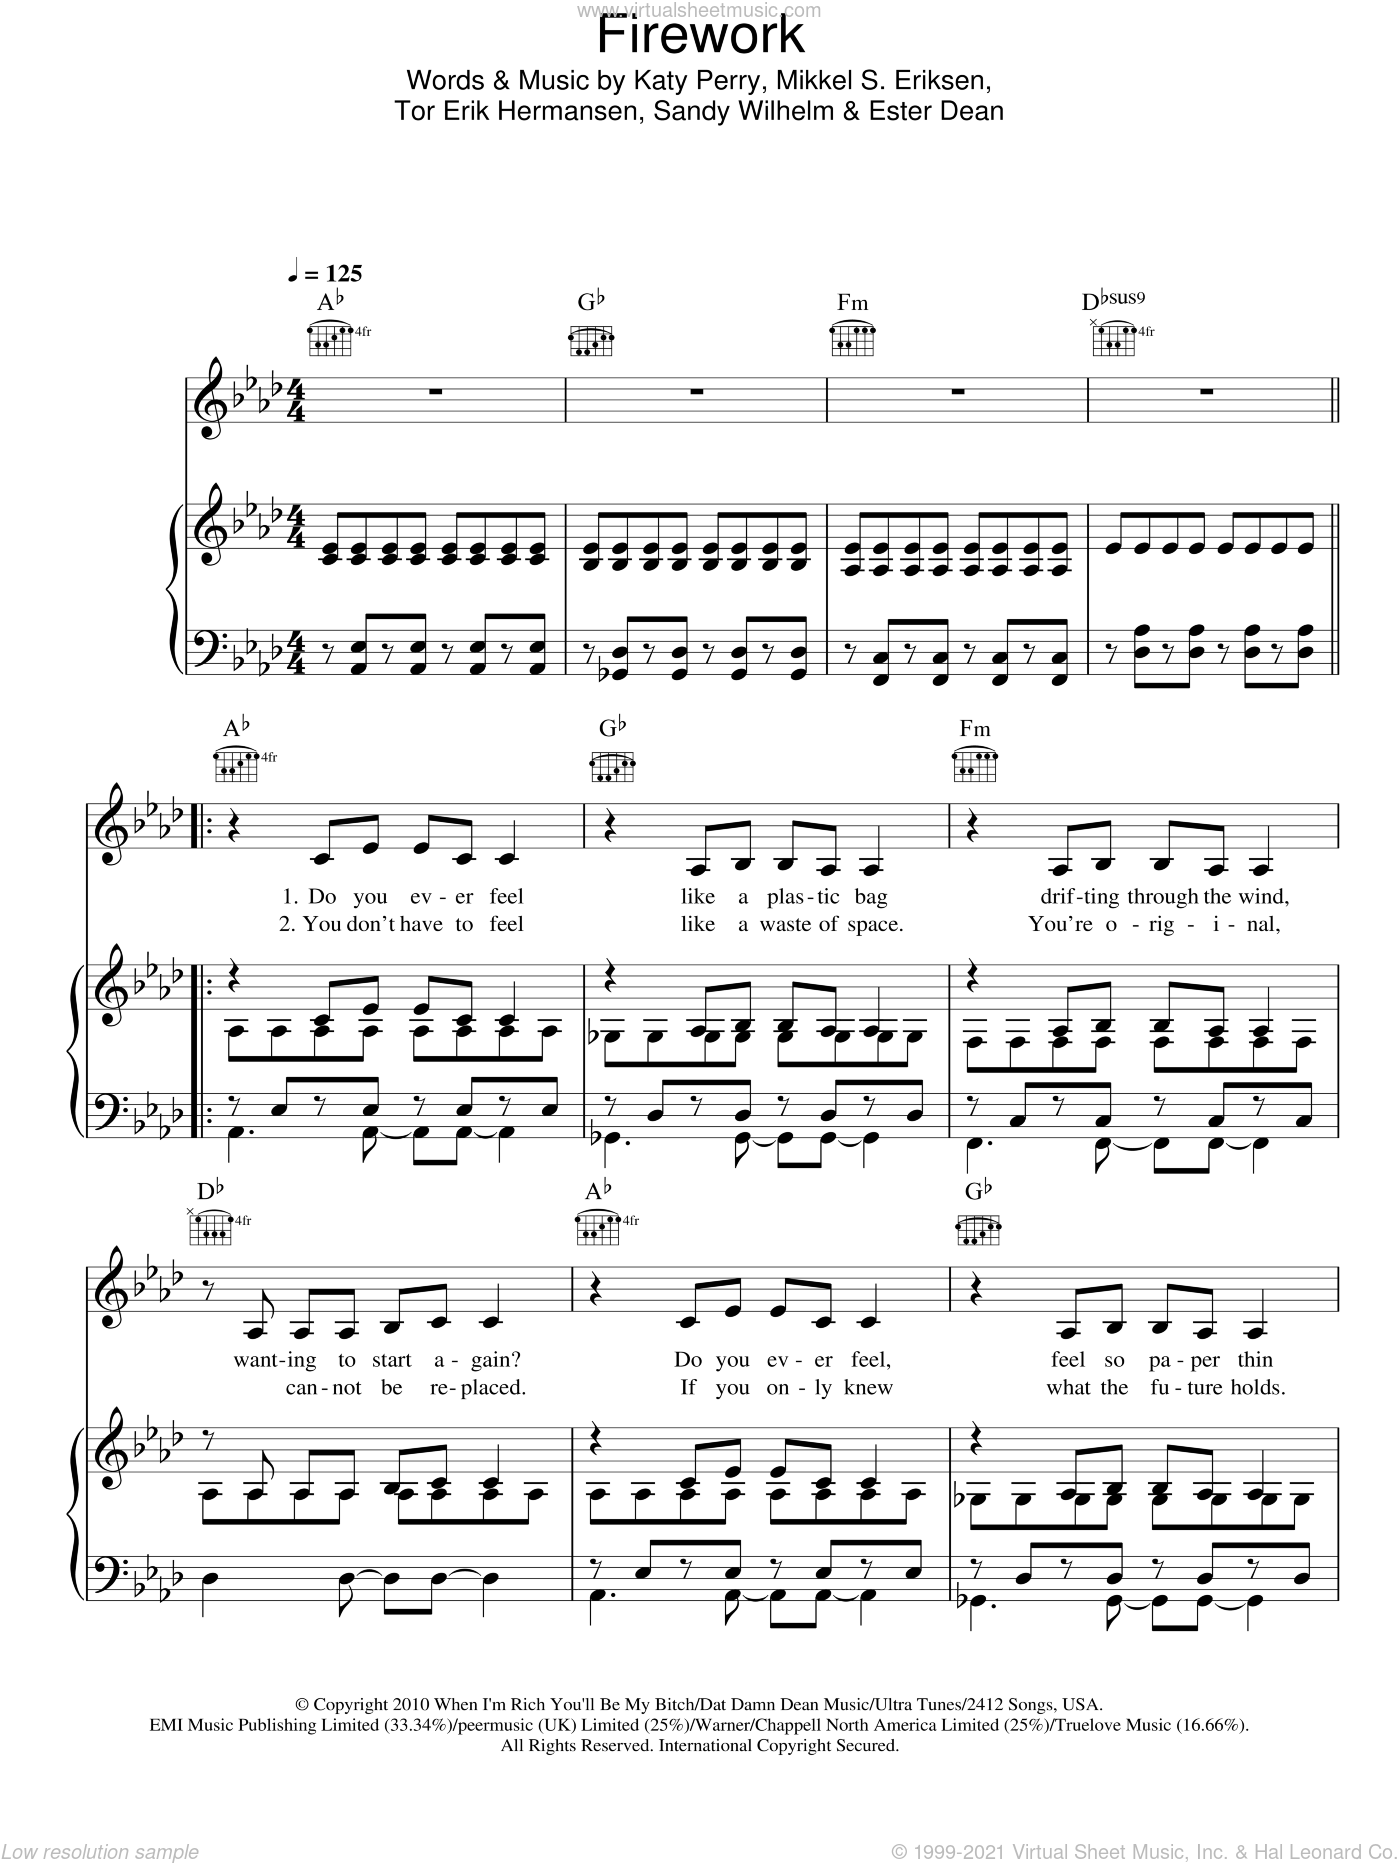 Firework sheet music for voice, piano or guitar by Katy Perry, Ester Dean, Mikkel S. Eriksen, Sandy Wilhelm and Tor Erik Hermansen, intermediate skill level